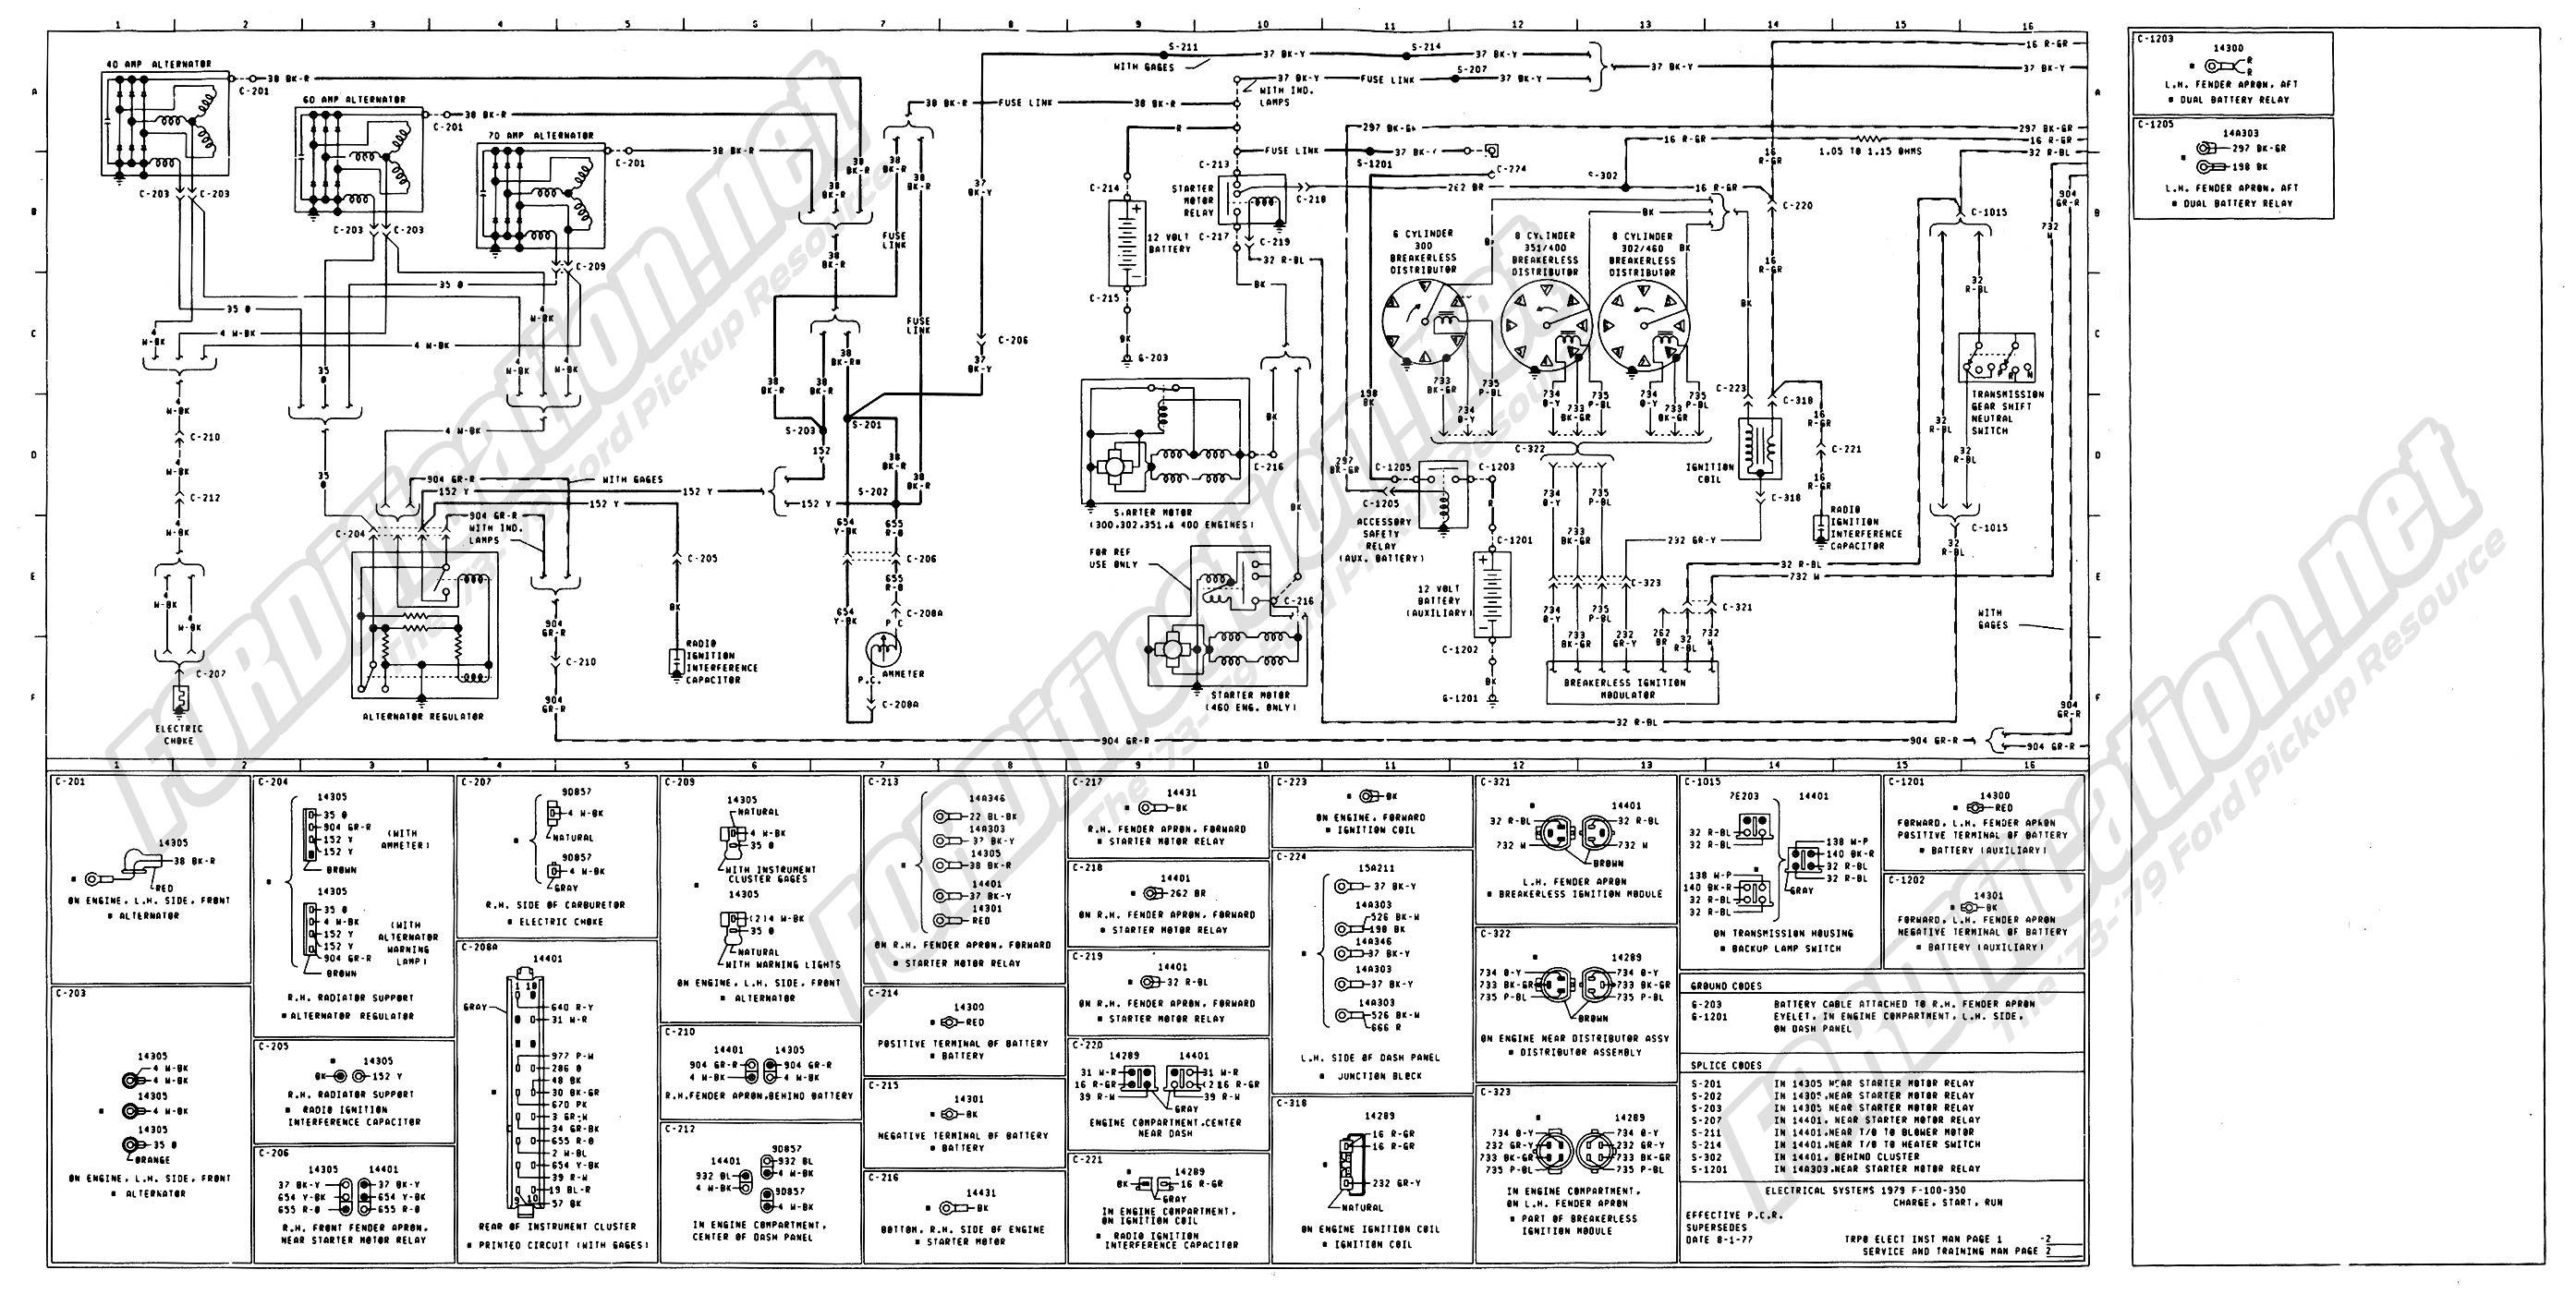 1979 f150 fuel gauge wiring diagram list of schematic circuit stewart  warner fuel gauge wiring diagram